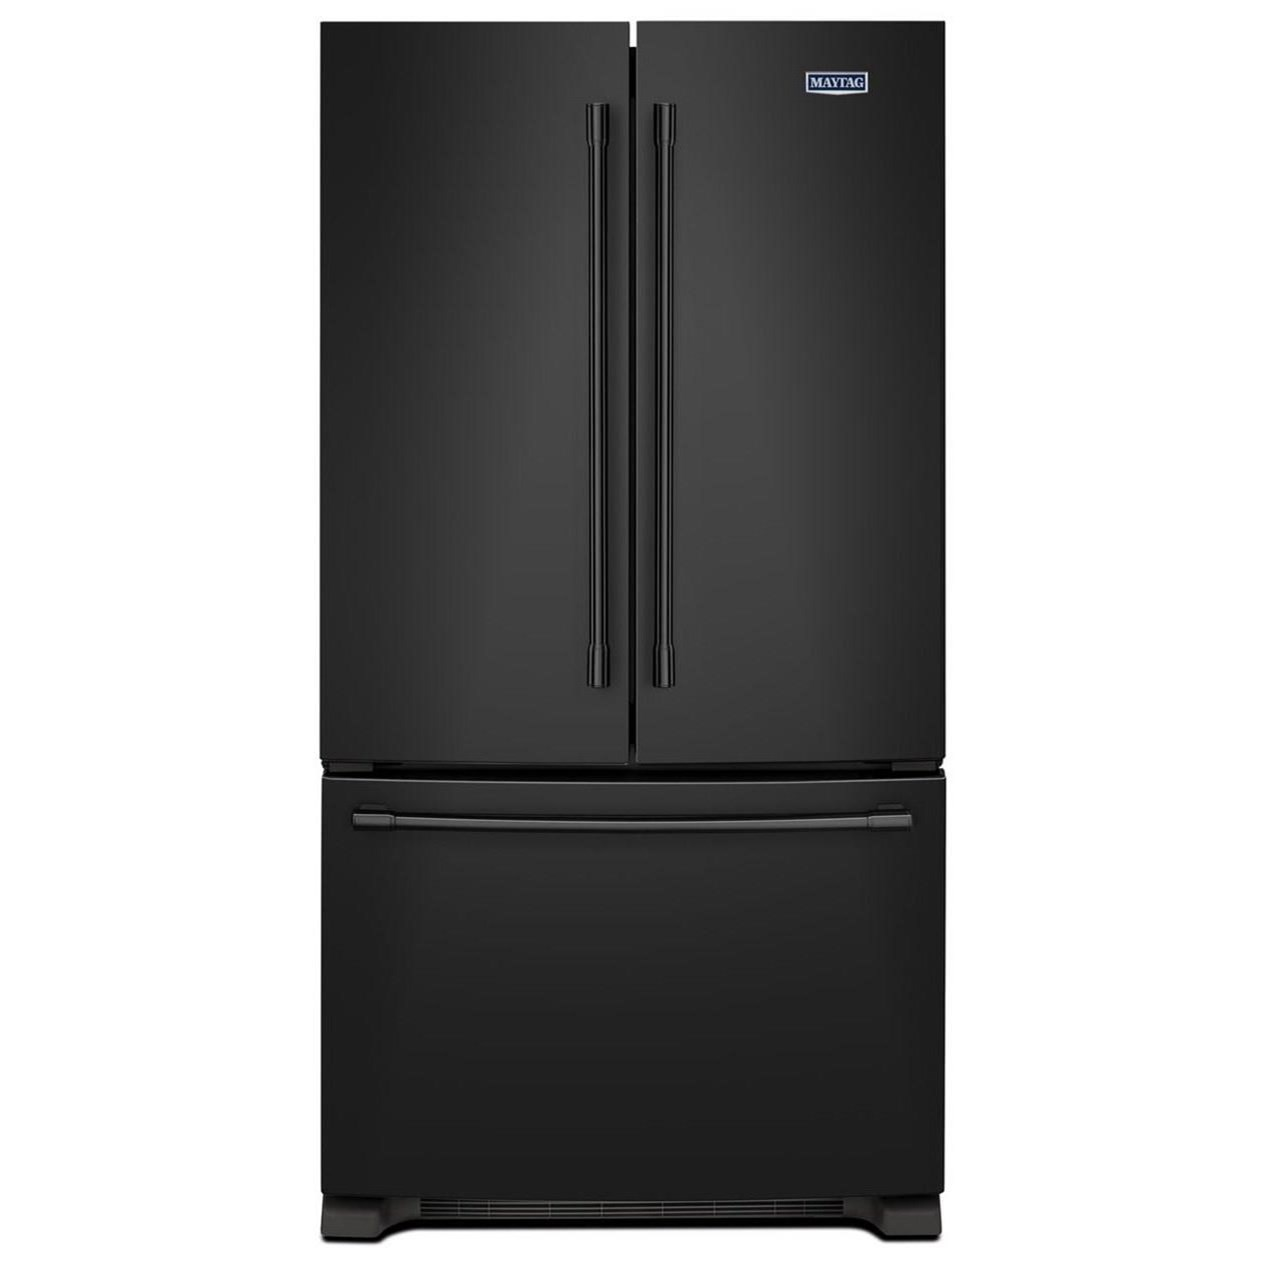 Maytag Mff2558feb33 Inch Wide French Door Refrigerator 22 Cu Ft